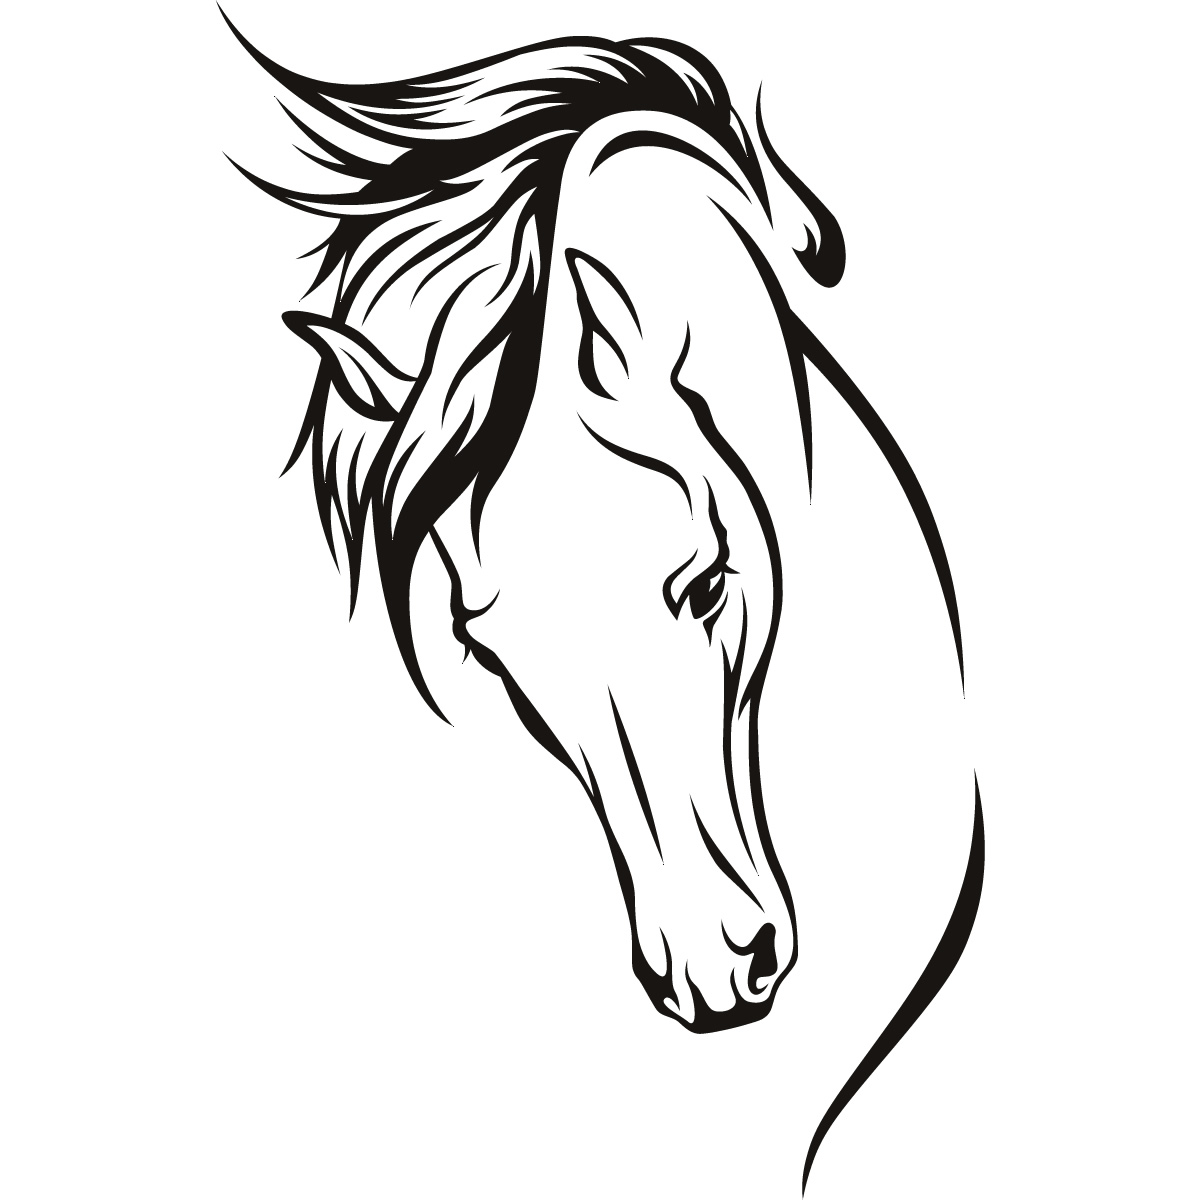 1200x1200 Drawn Horse Easy Draw